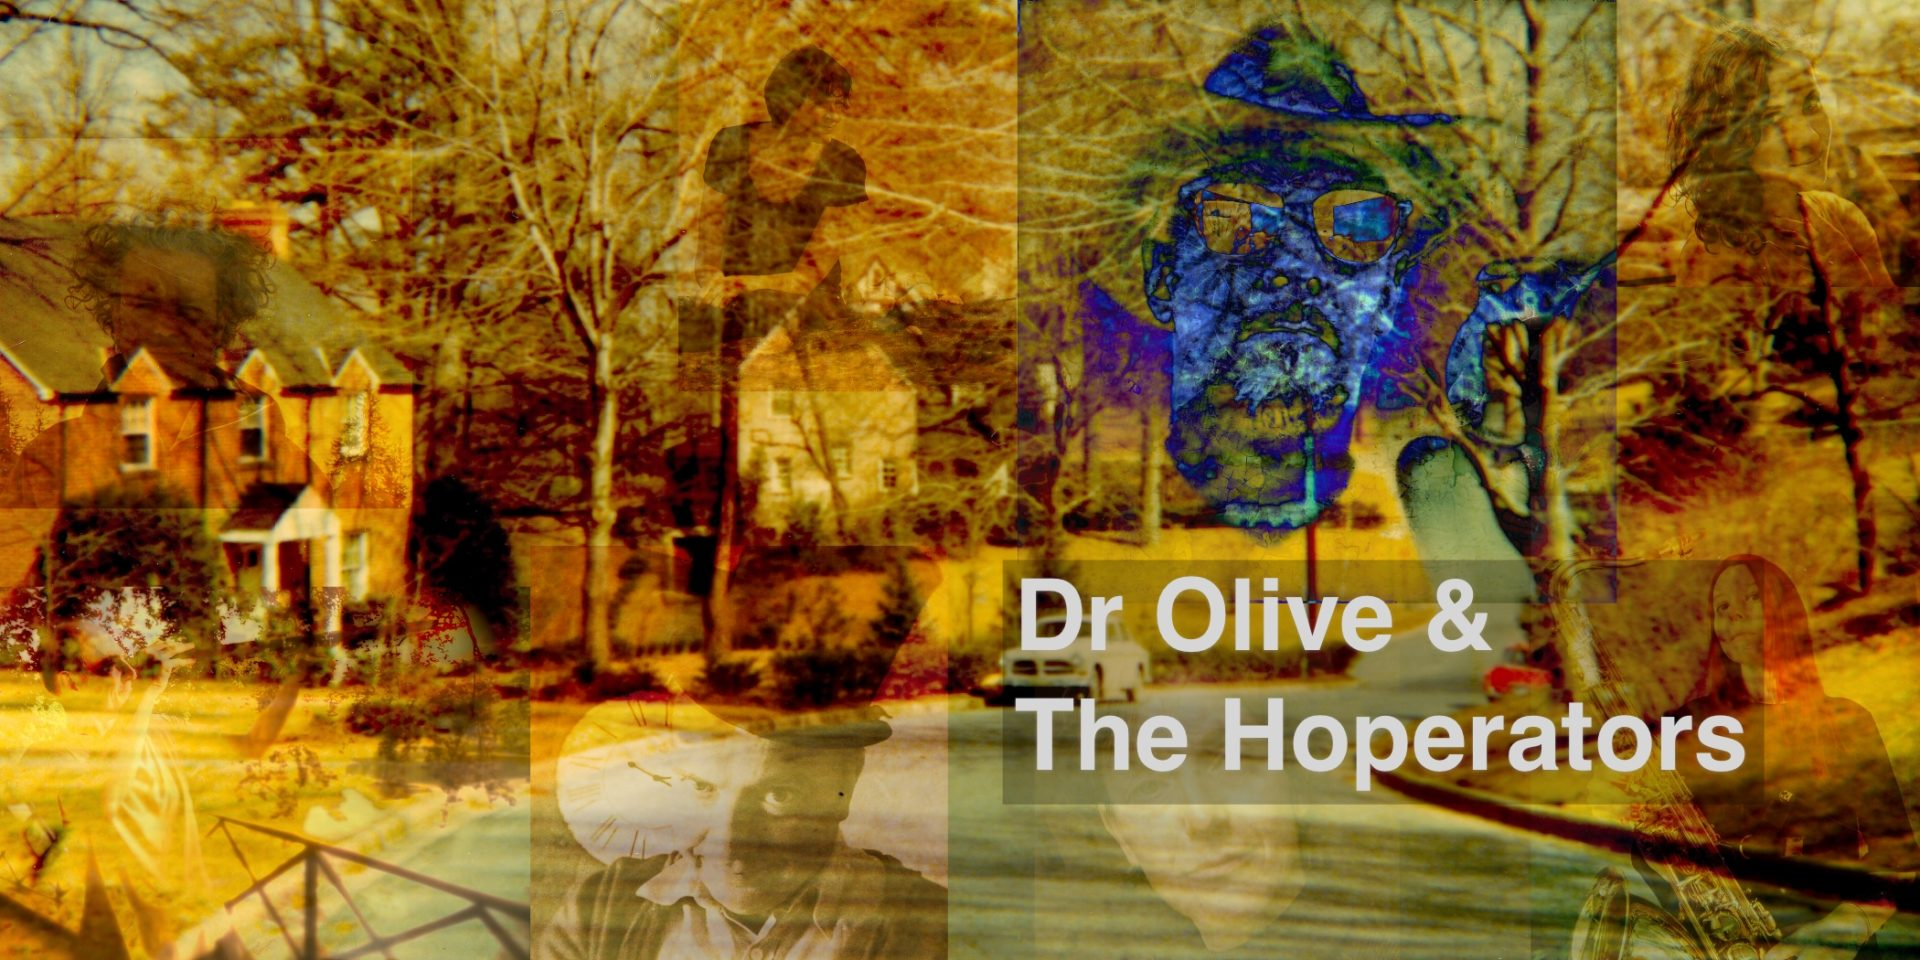 Dr Olive & the Hoperators